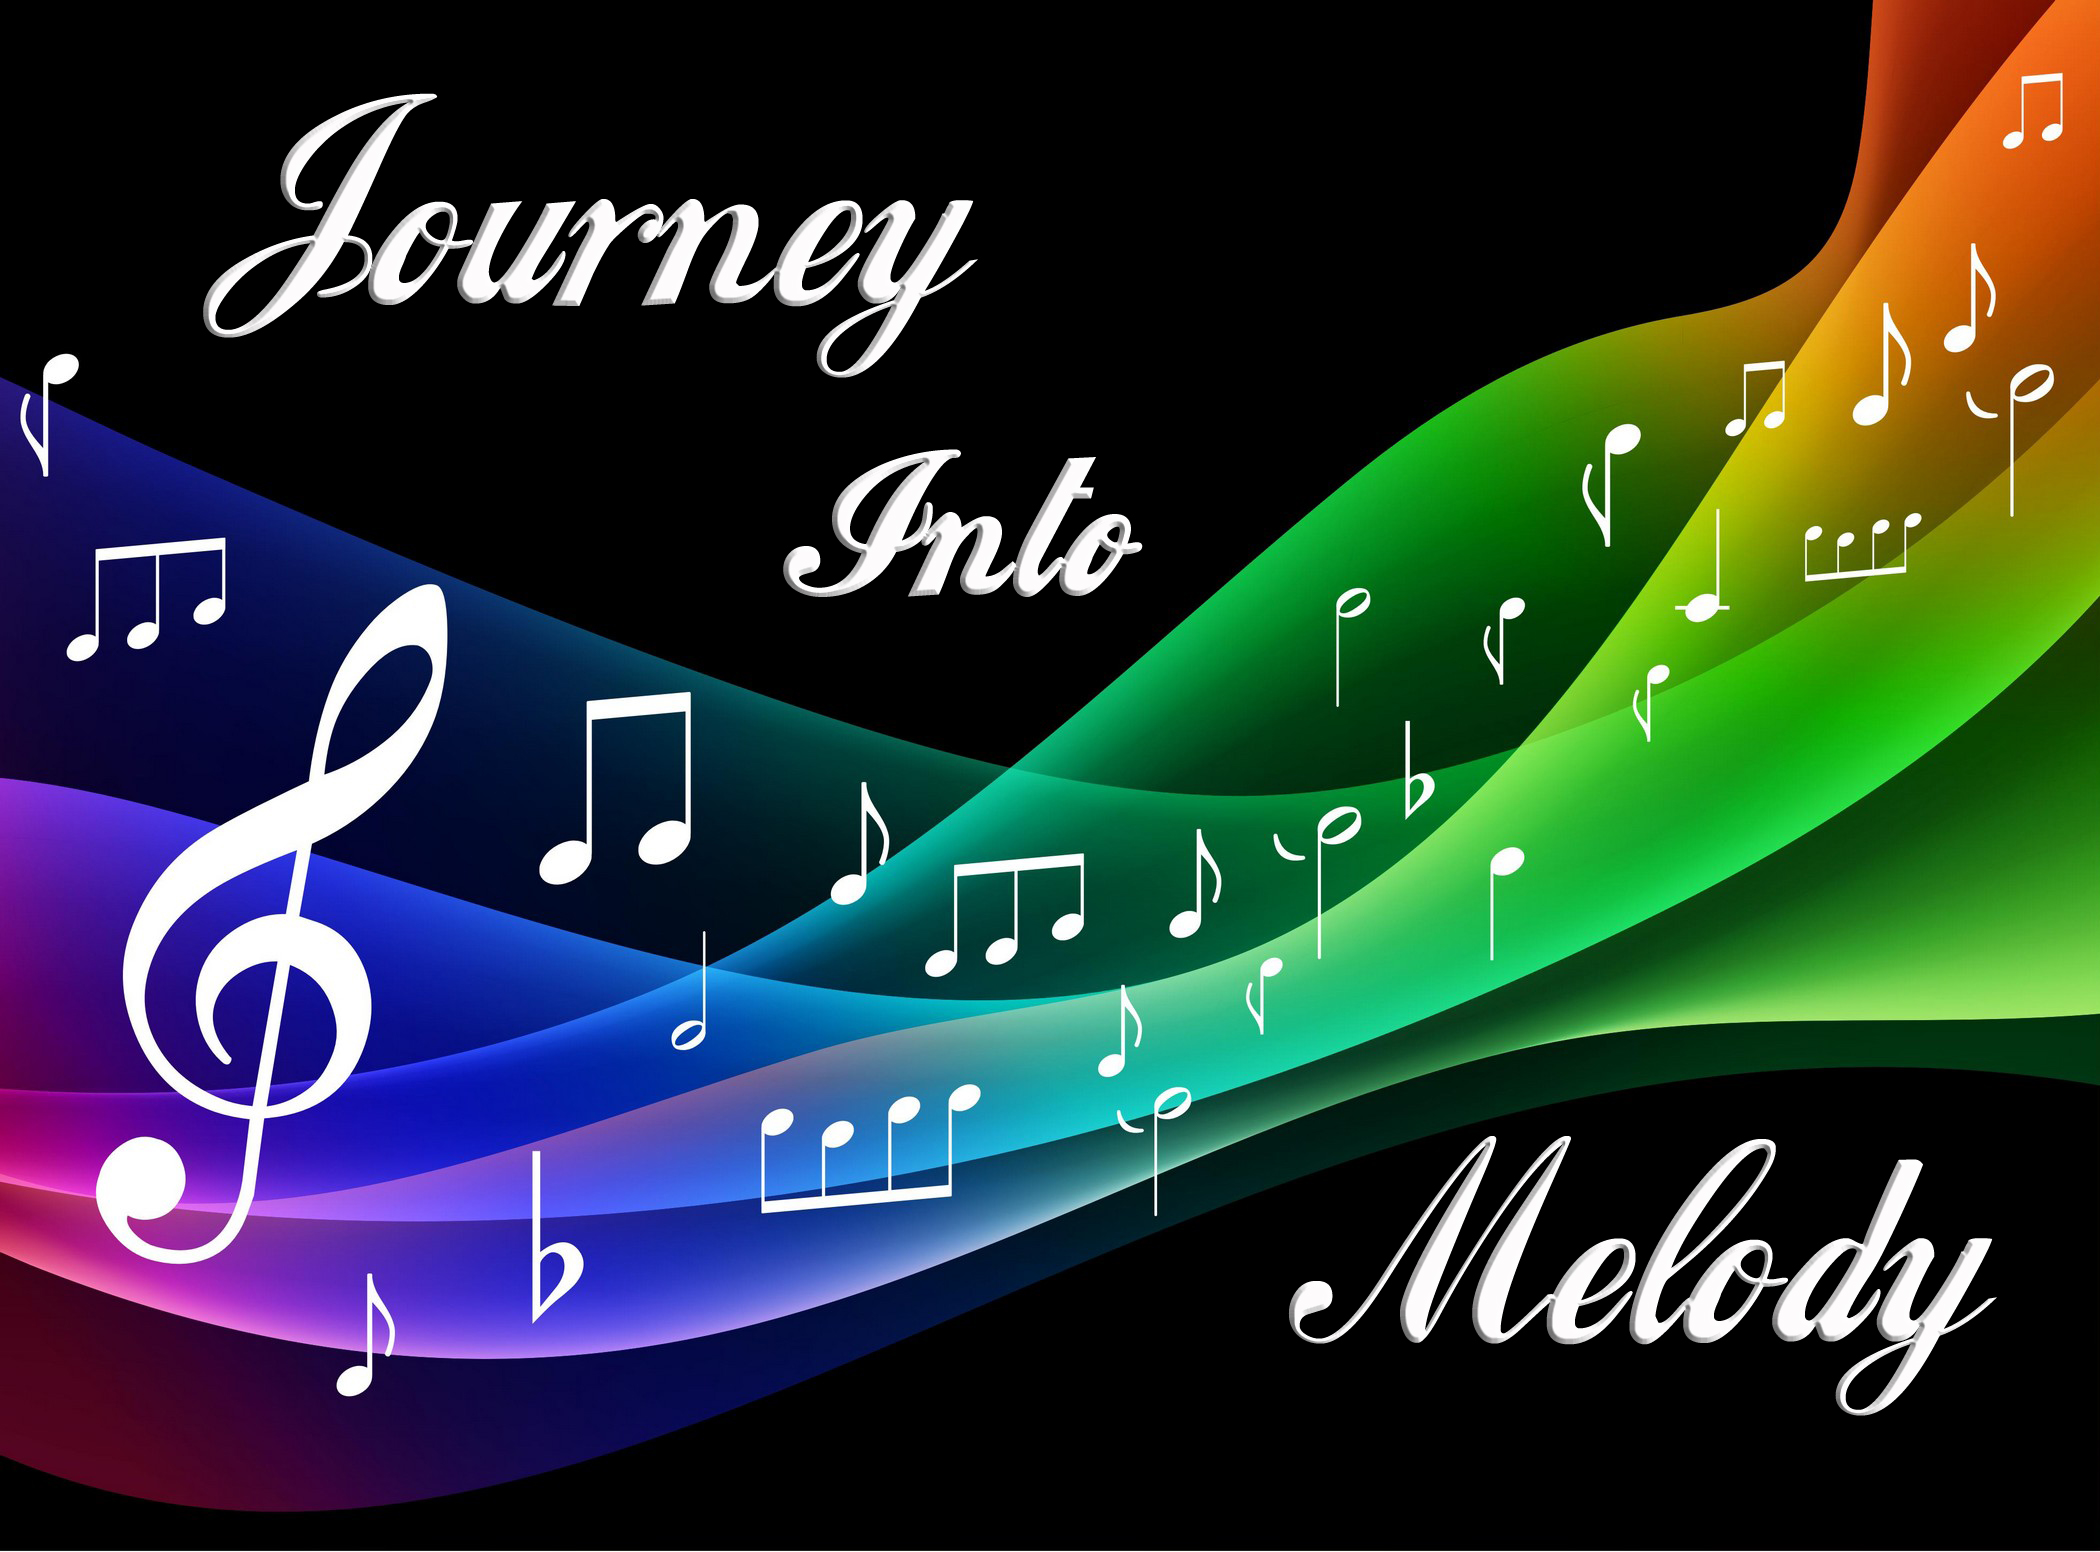 PRX » Series » Journey Into Melody